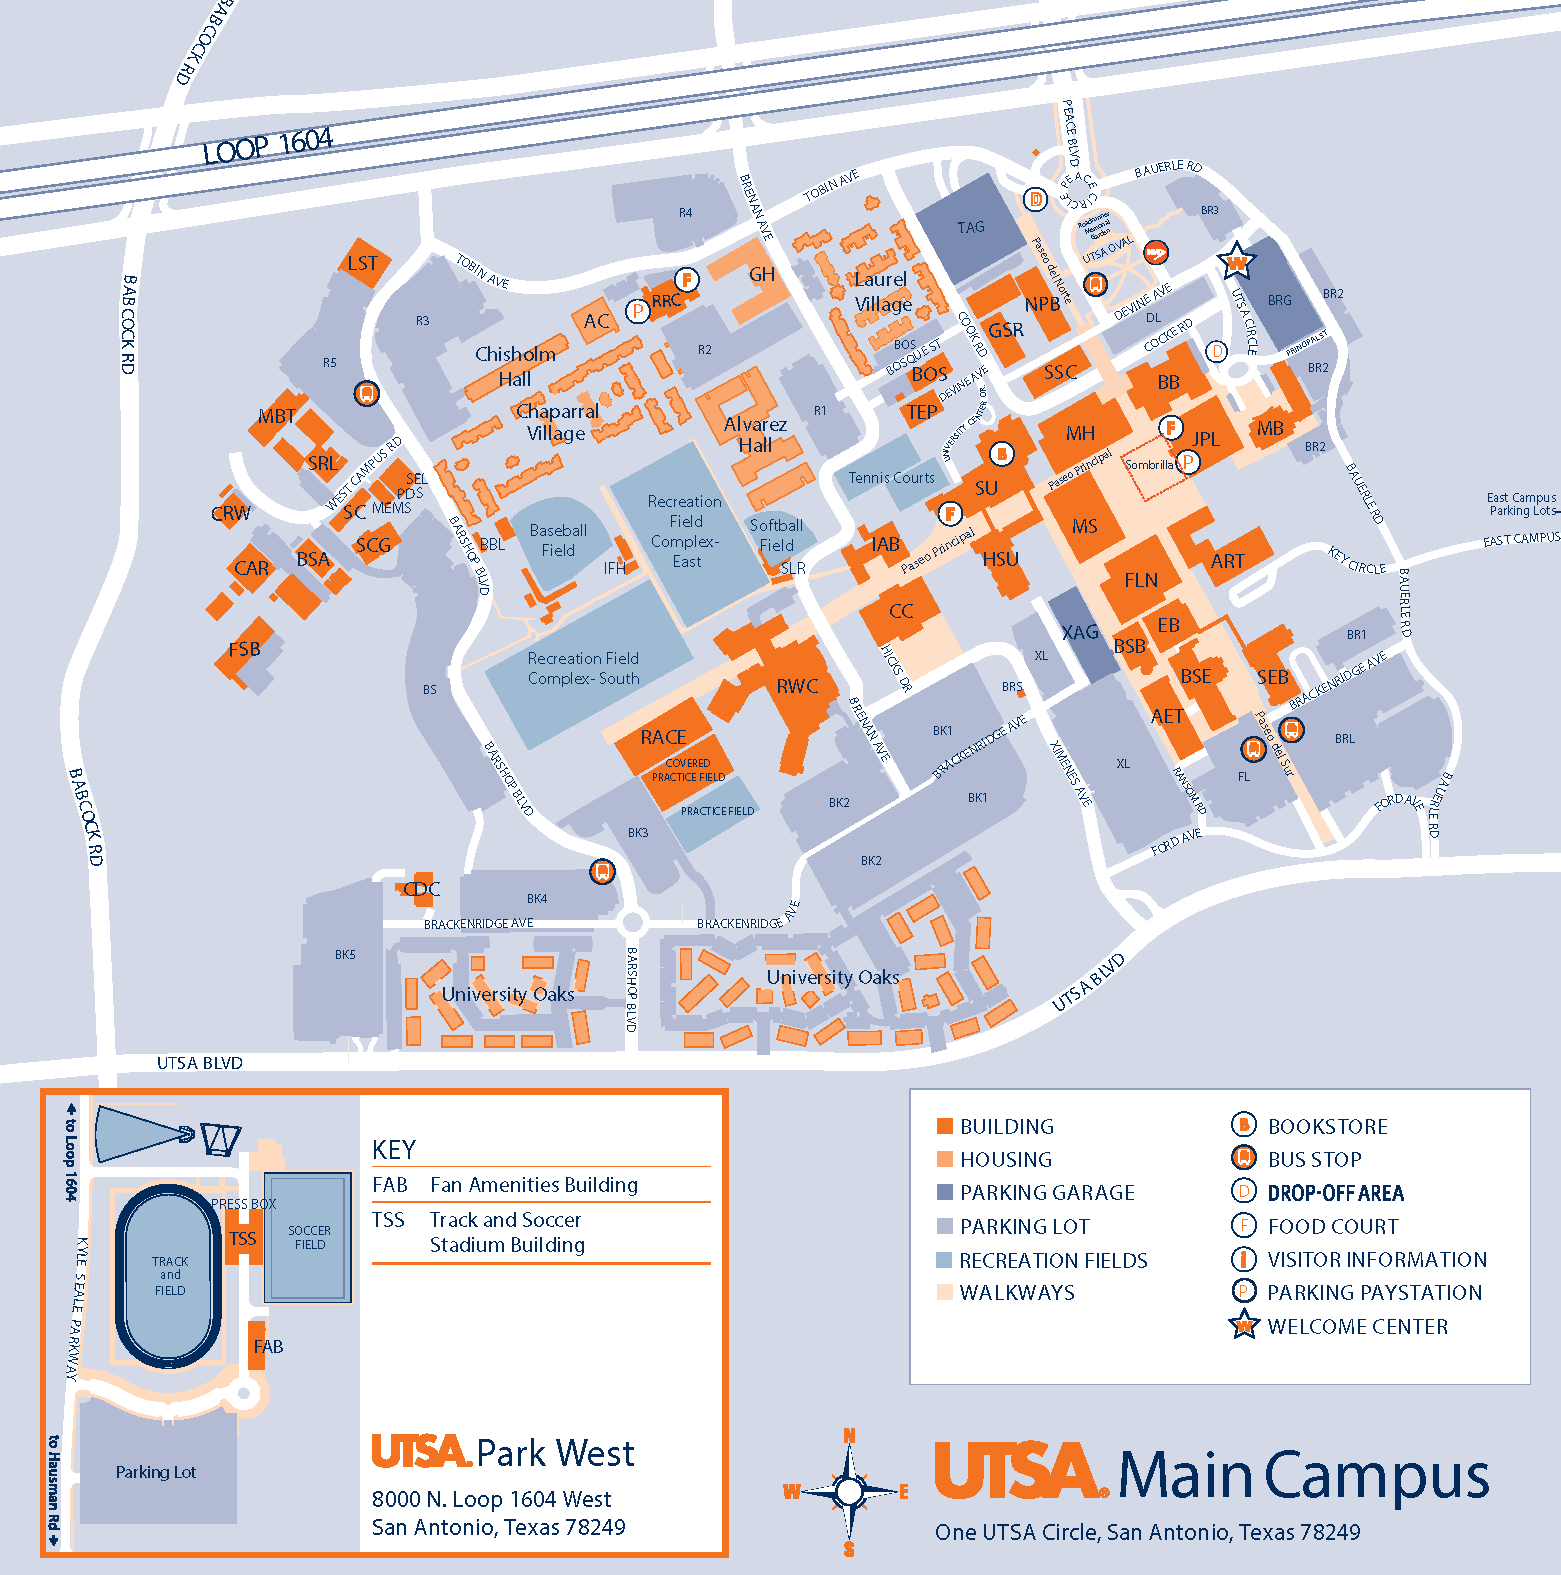 Utsa Downtown Campus Map Main Campus | UTSA | University of Texas at San Antonio